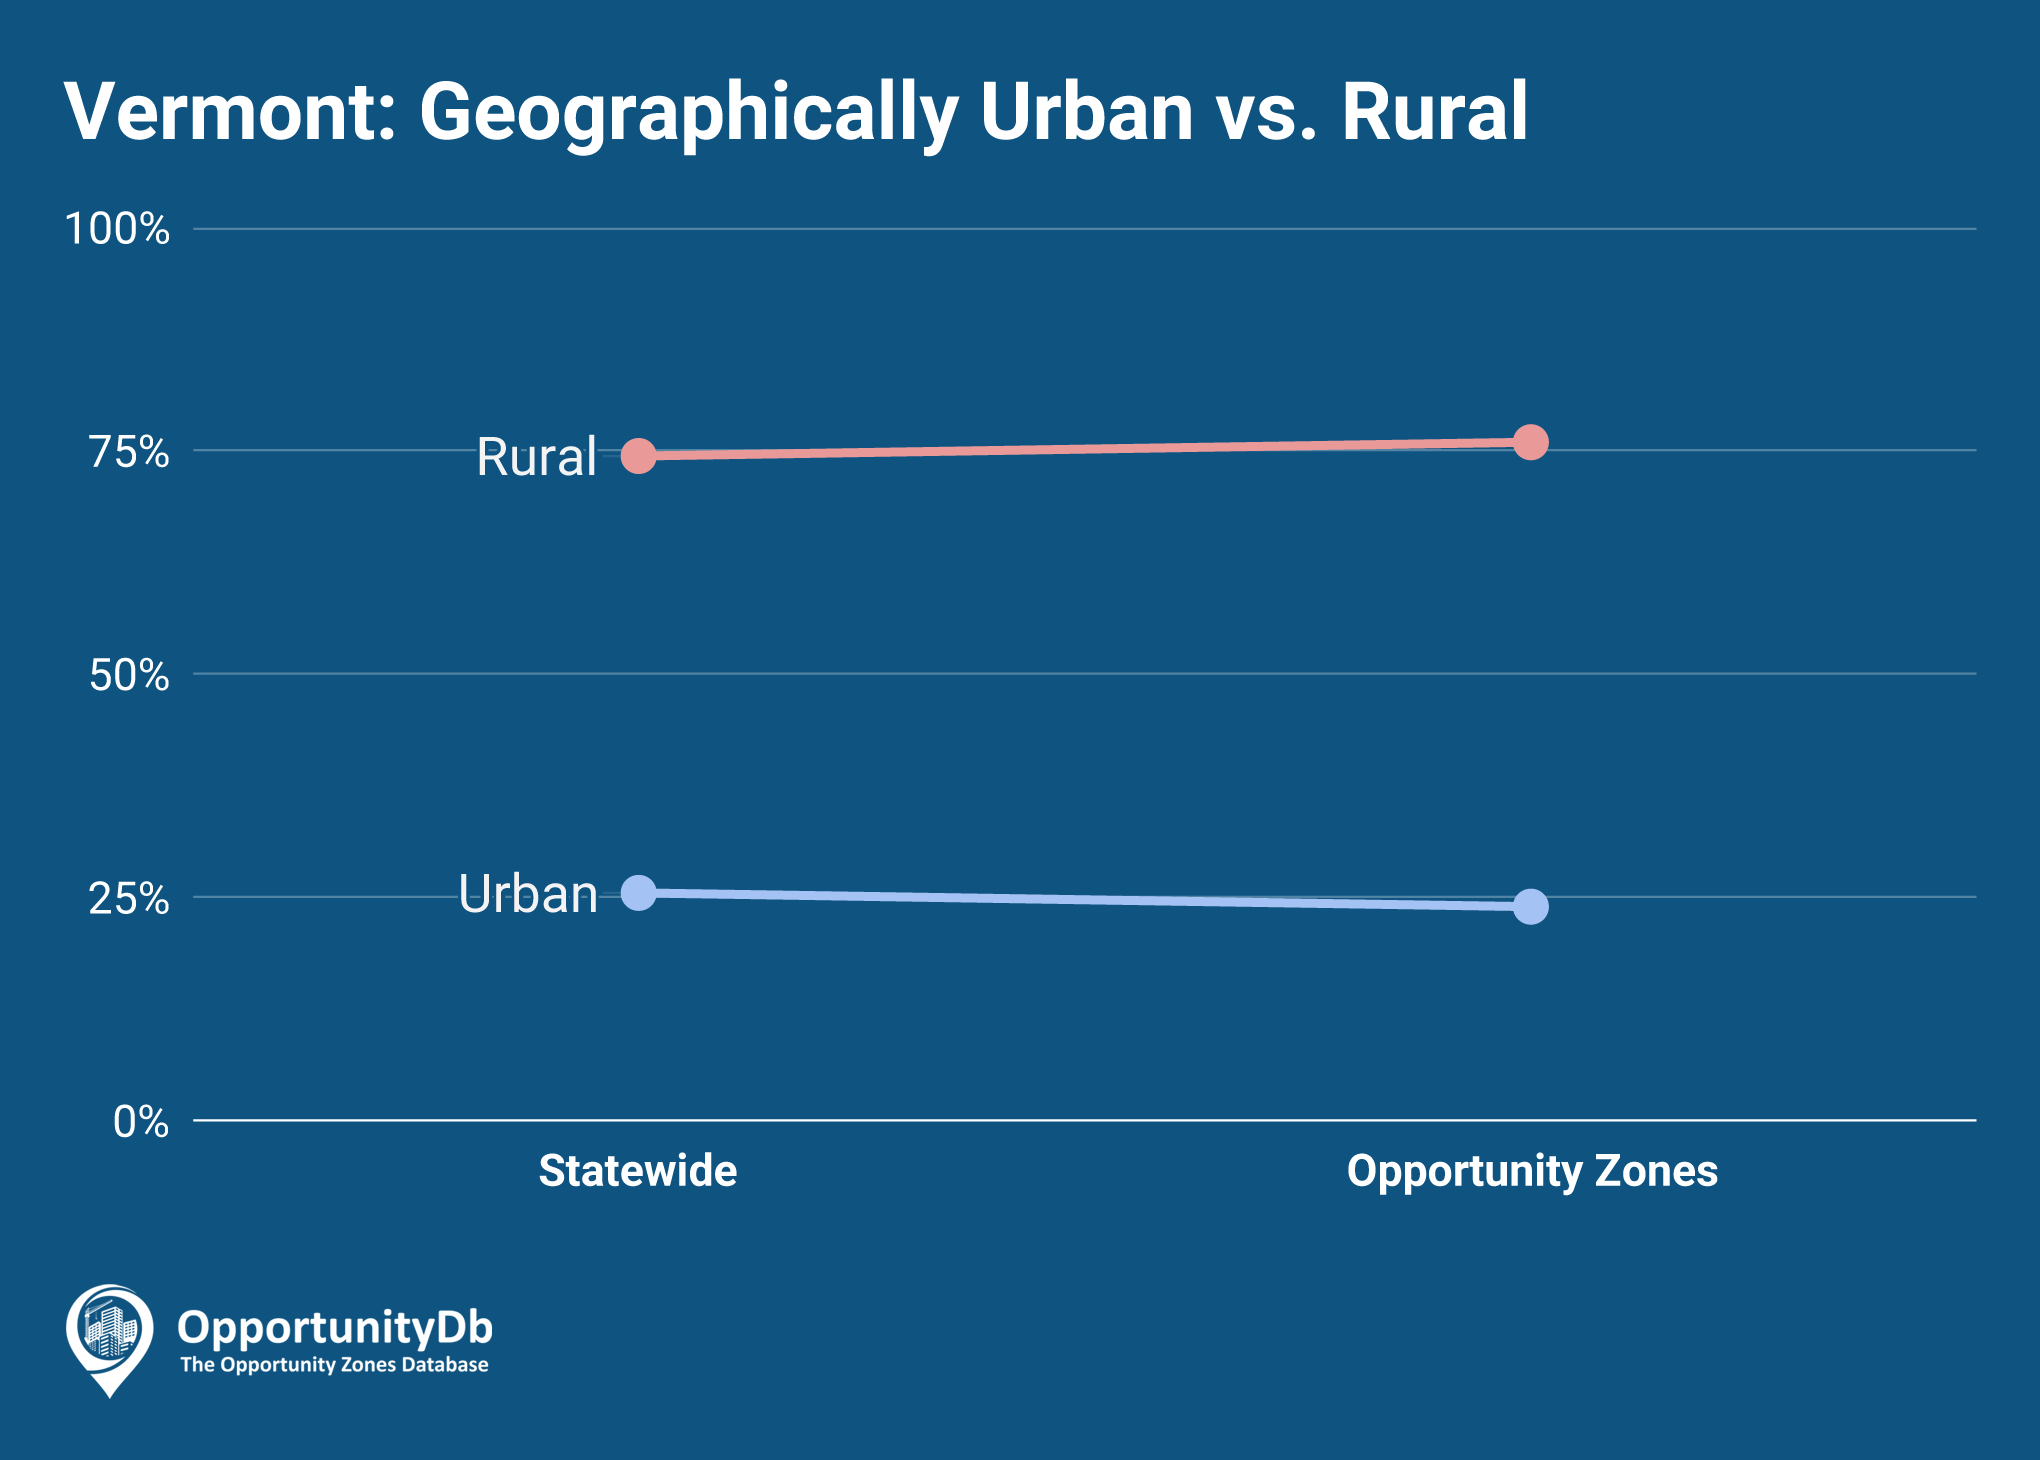 Urban vs. Rural in Vermont Opportunity Zones